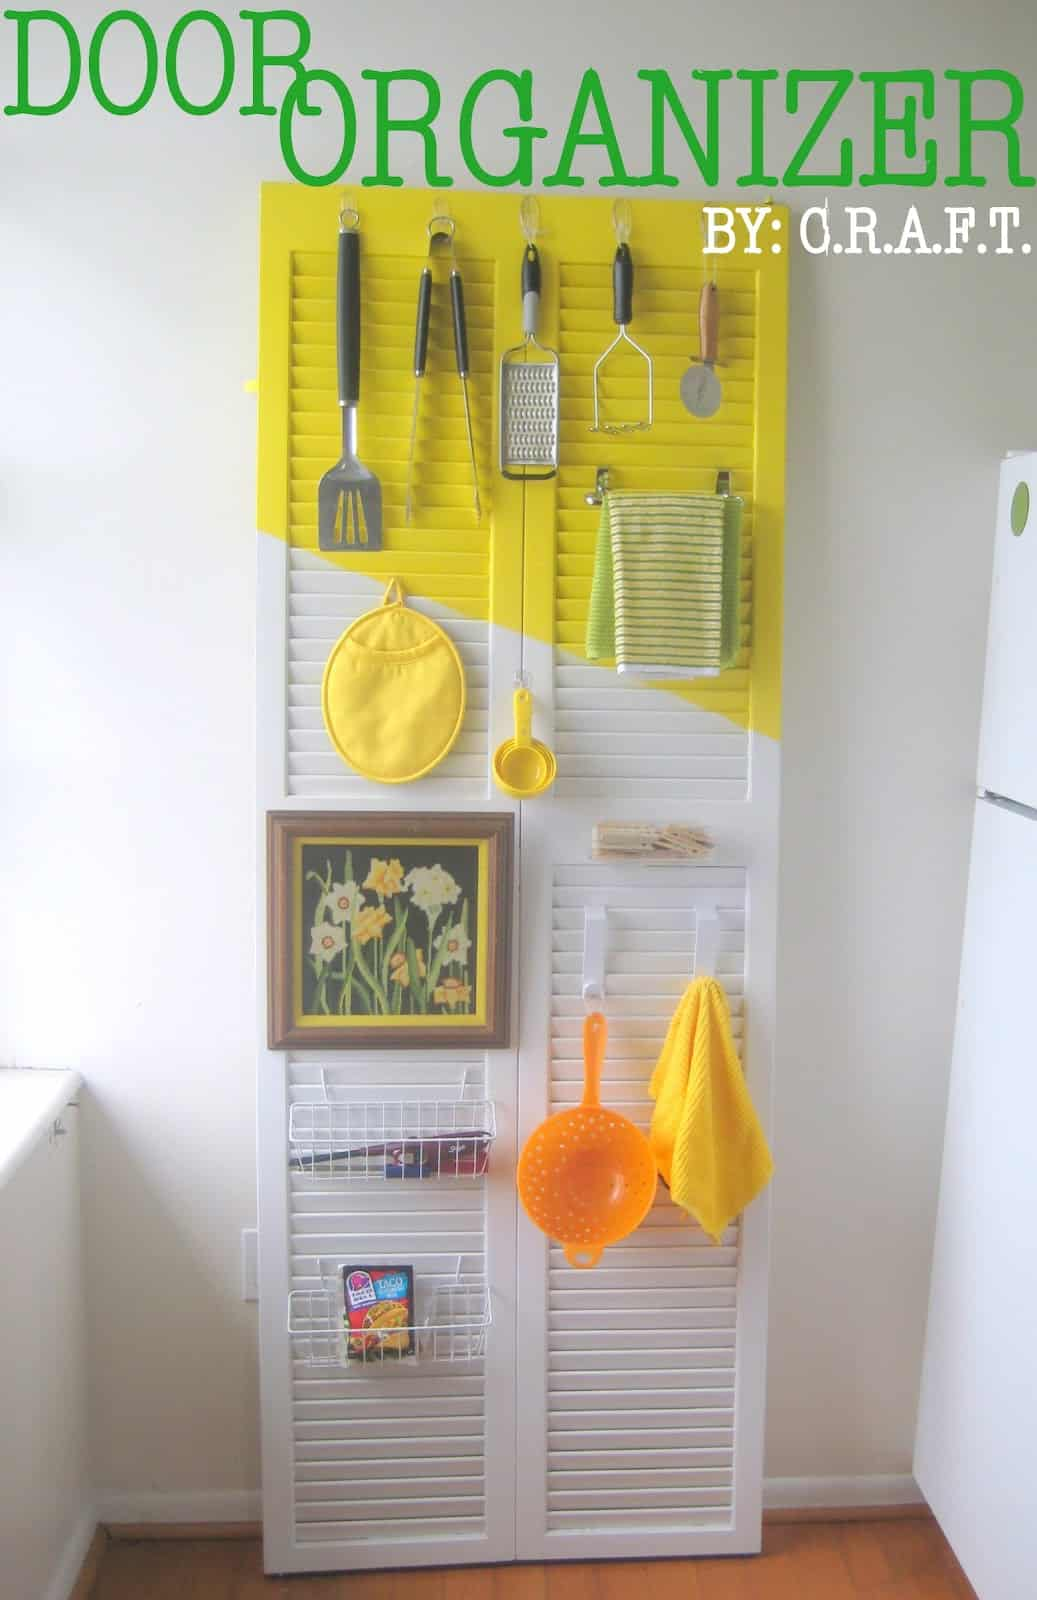 Door organizer for the kitchen